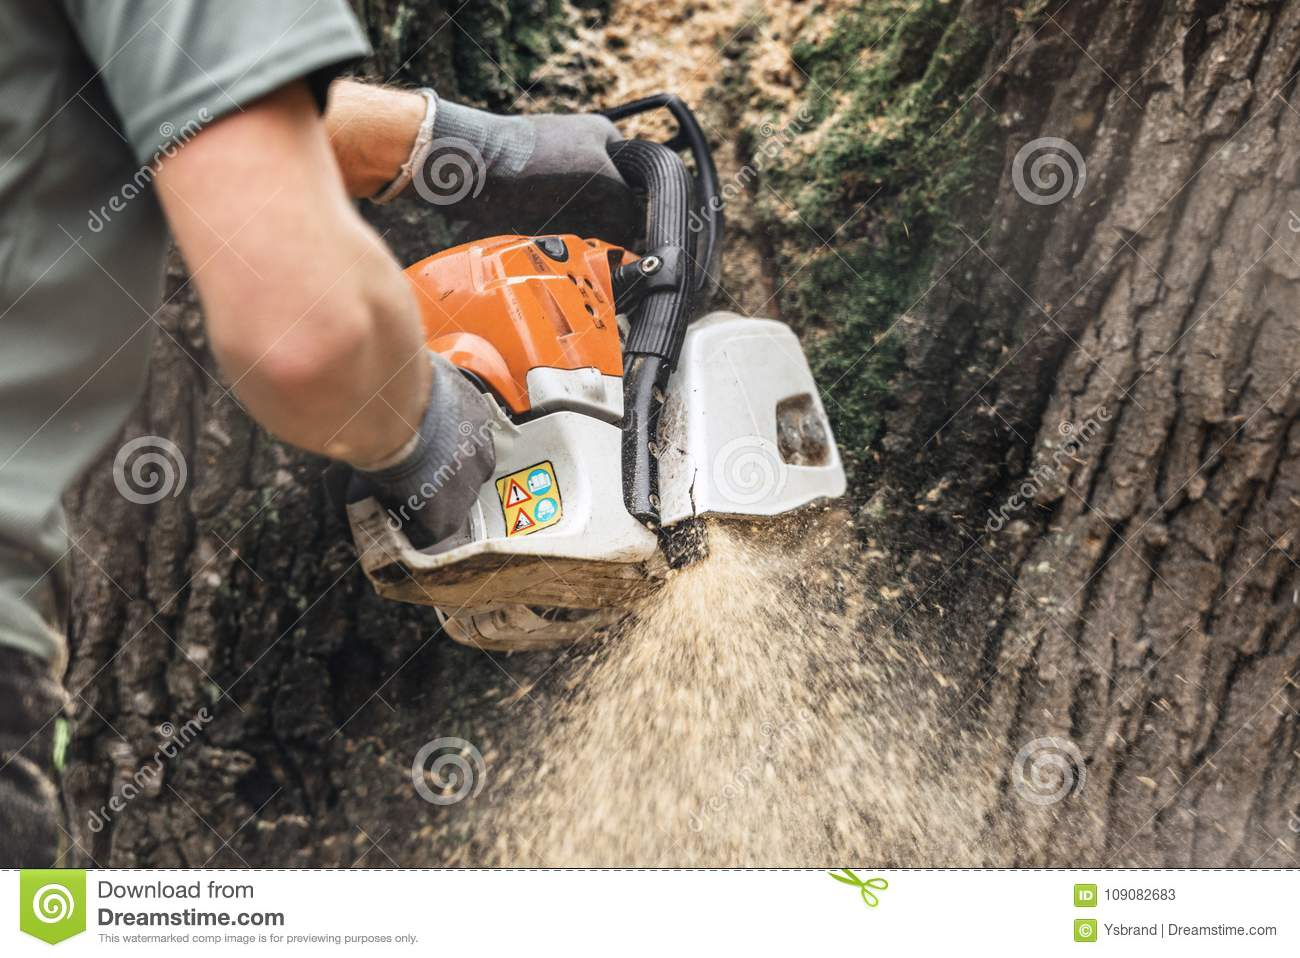 Man with chainsaw cutting large tree trunk.